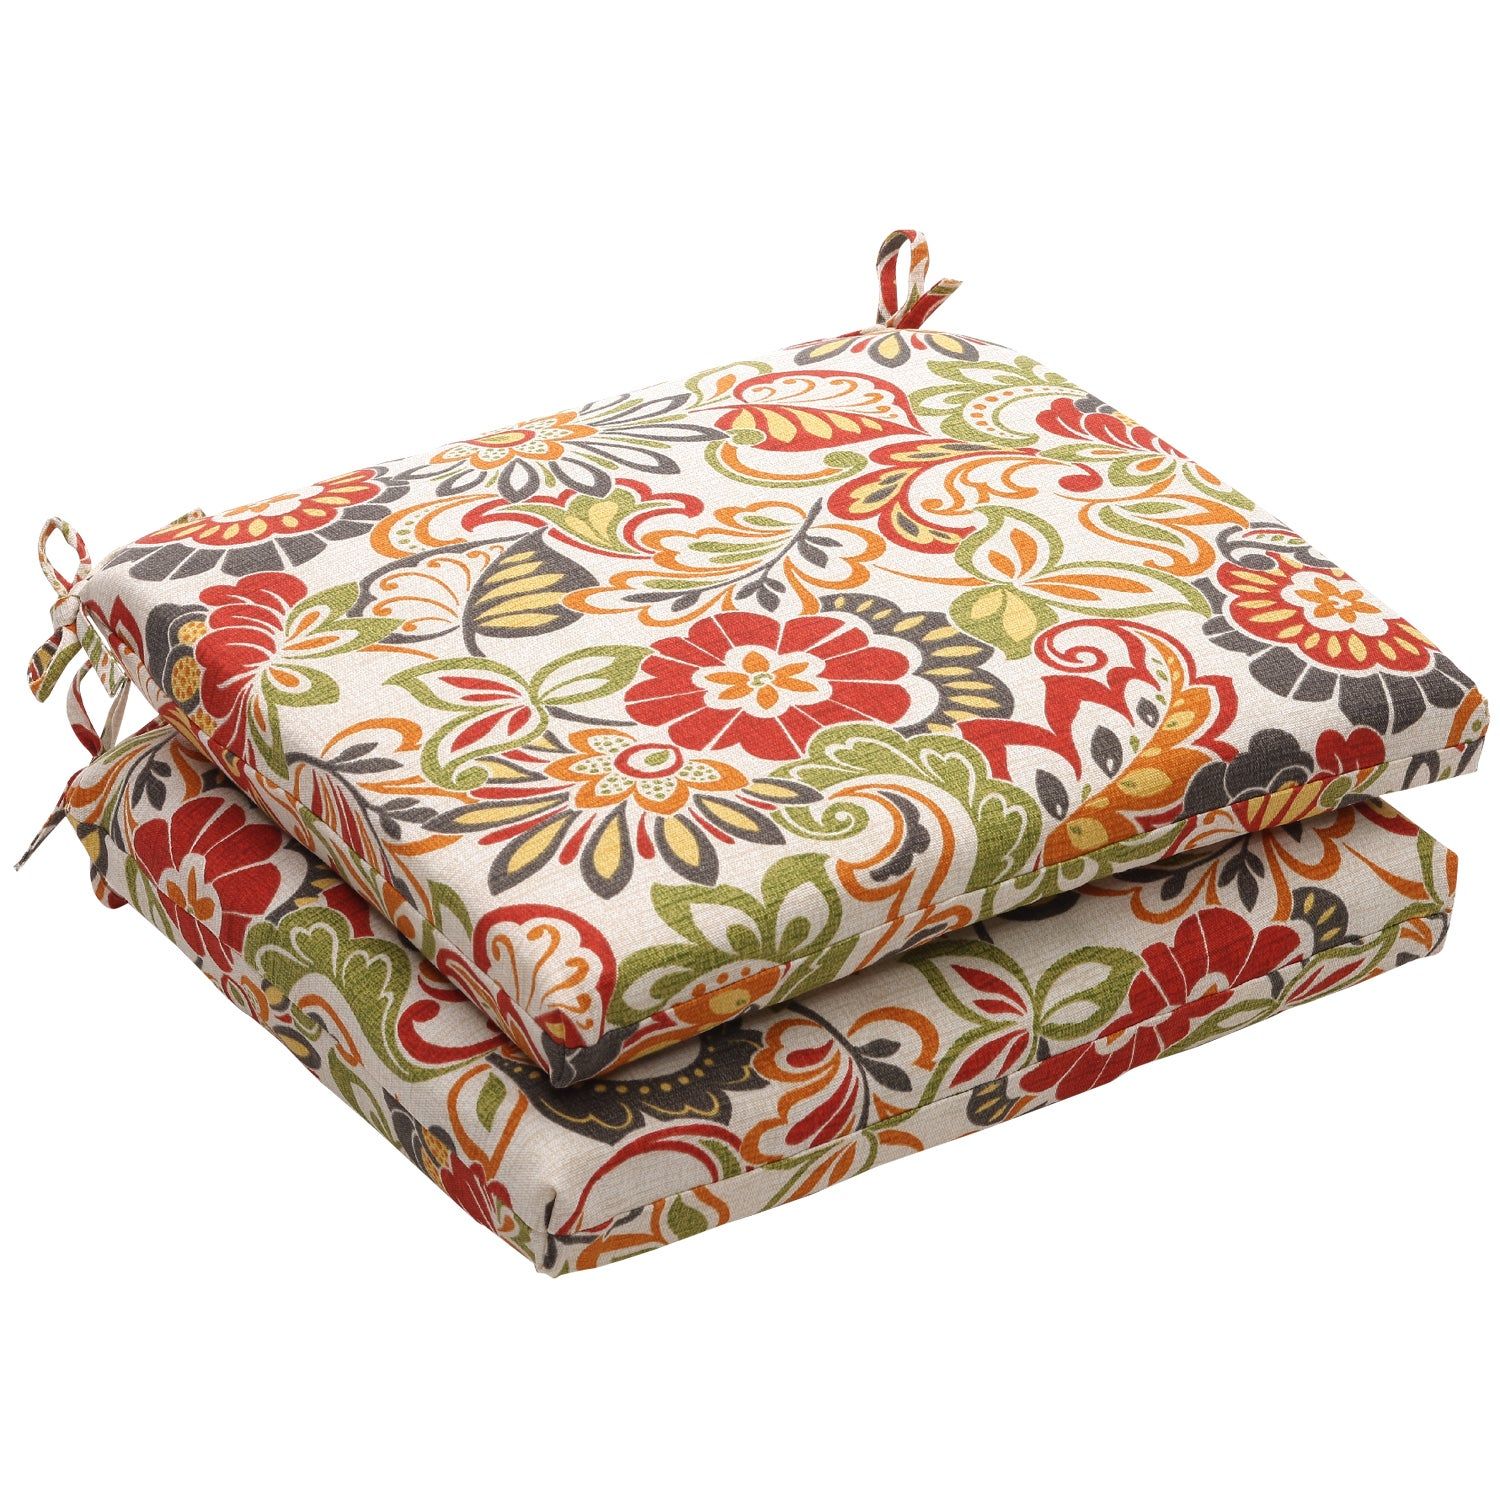 Outdoor Multicolored Floral Square Seat Cushion (Set of 2)